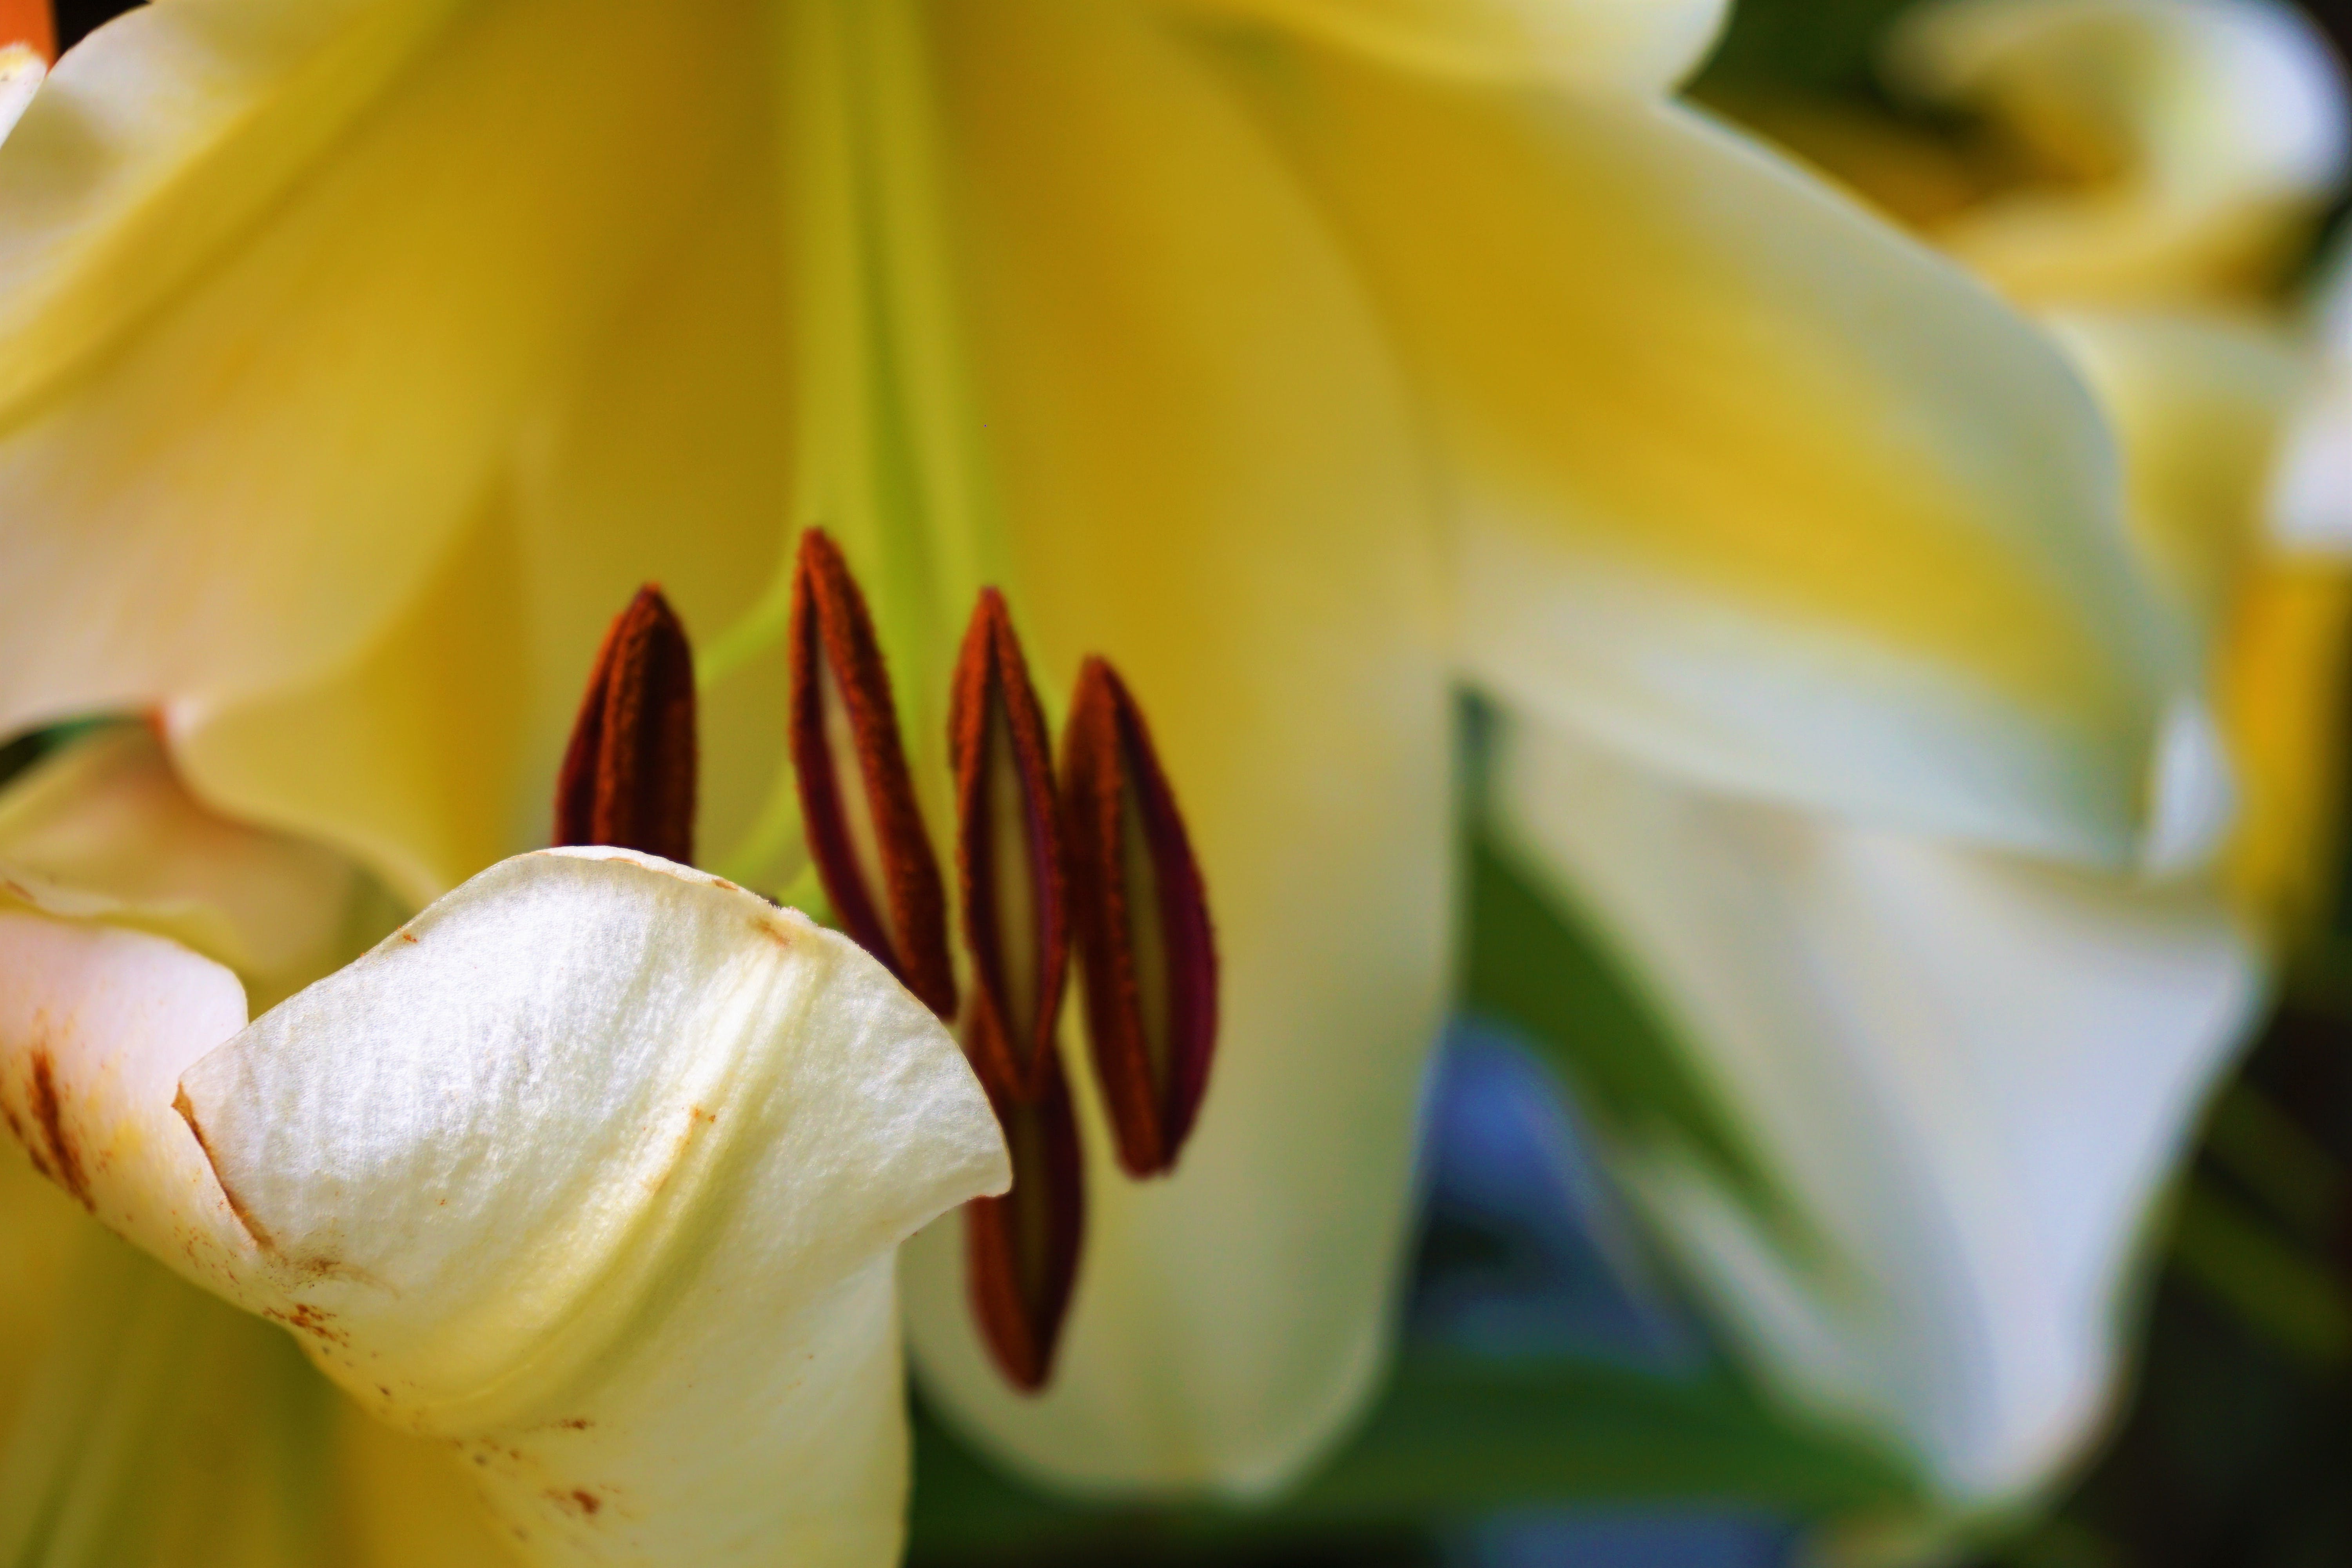 Free stock photo of blurred back, close-up view, flower, macro photo